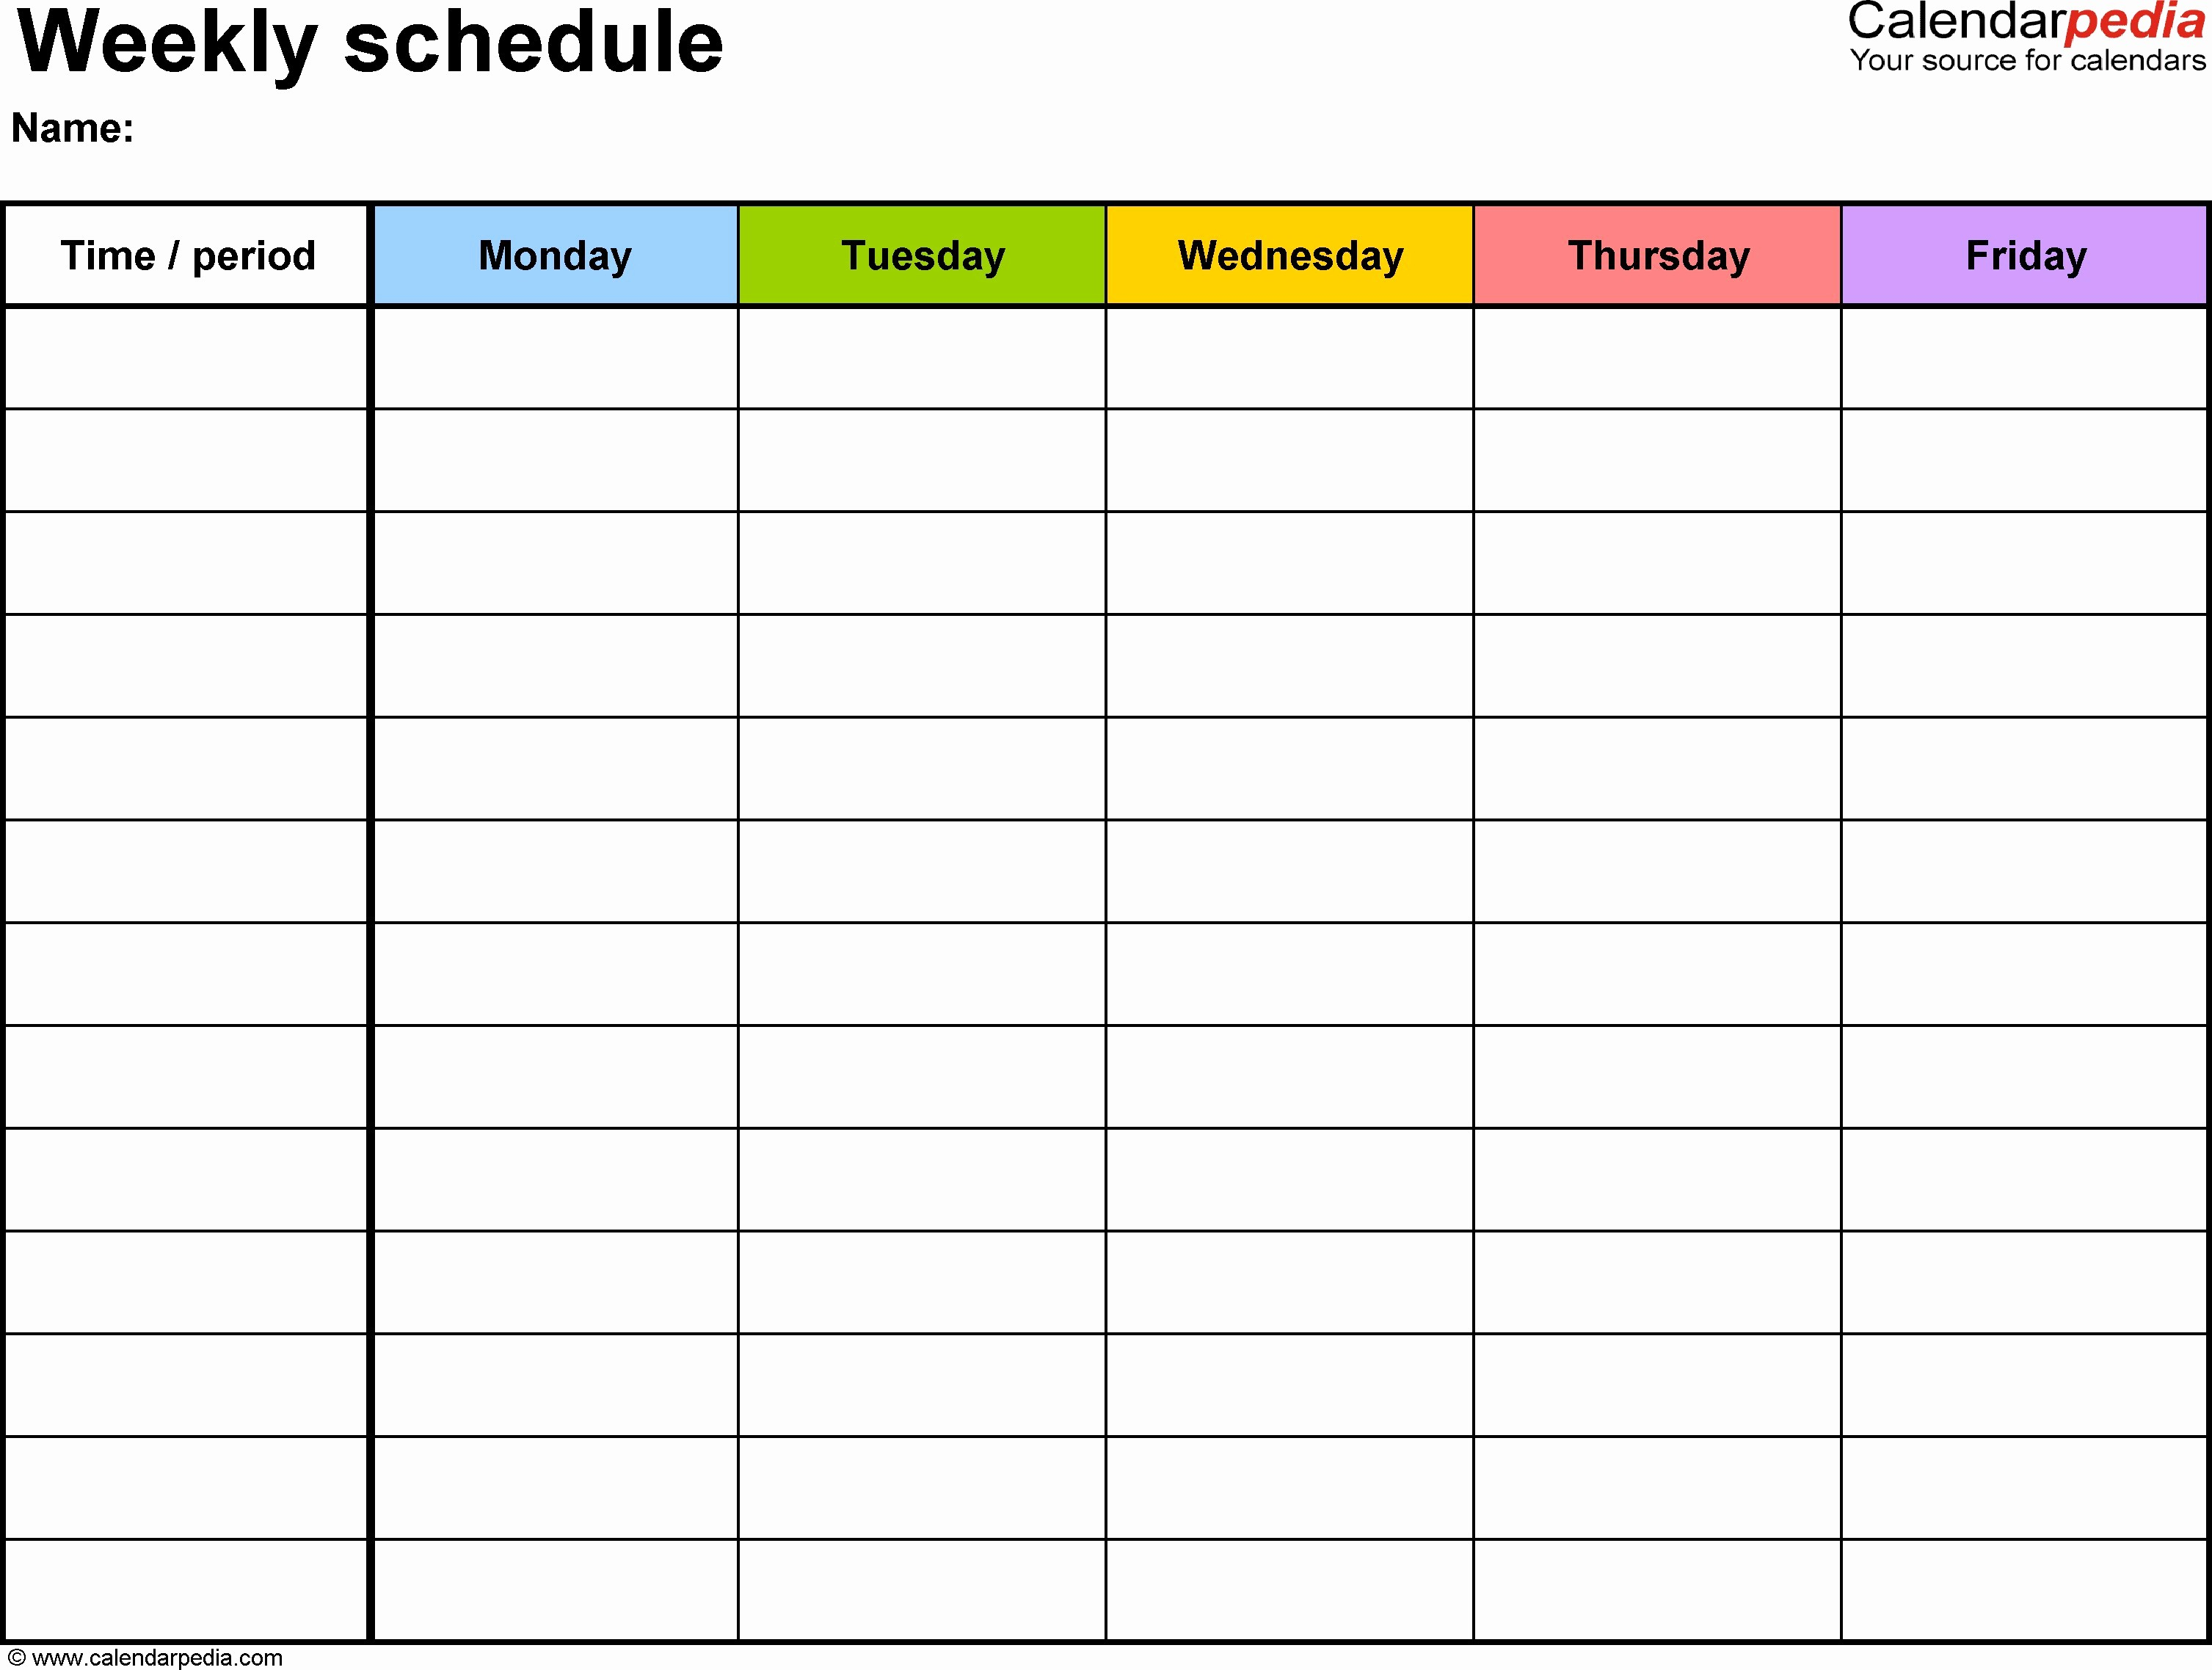 Weekly Calendar Starting with Monday Lovely Blank Monthly Calendar Template Week Starting with Monday